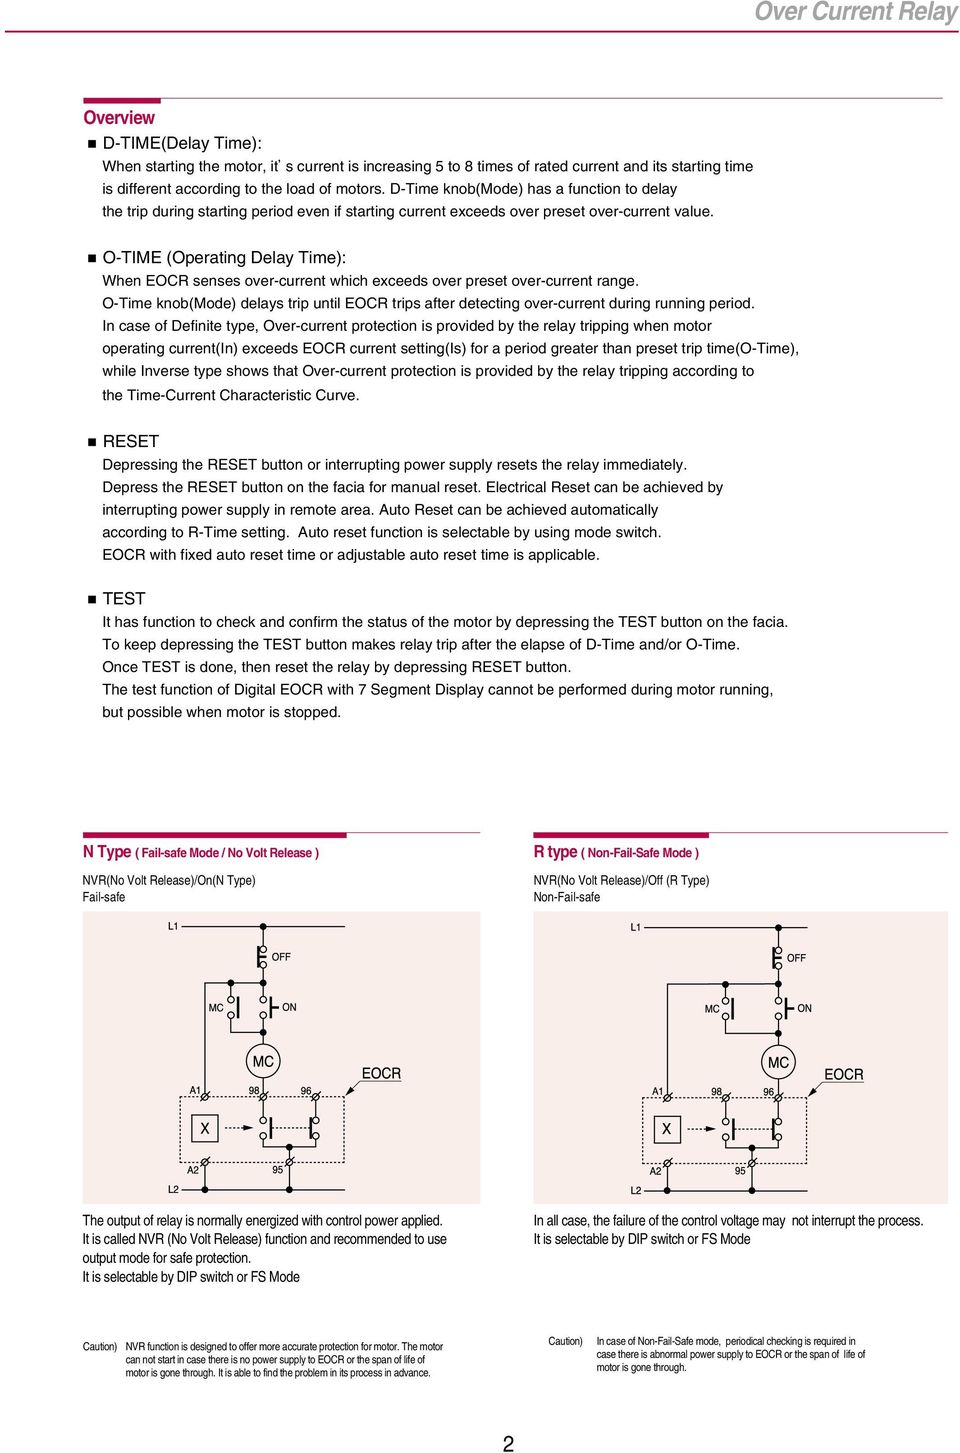 Electronic Over Current Relays - PDF